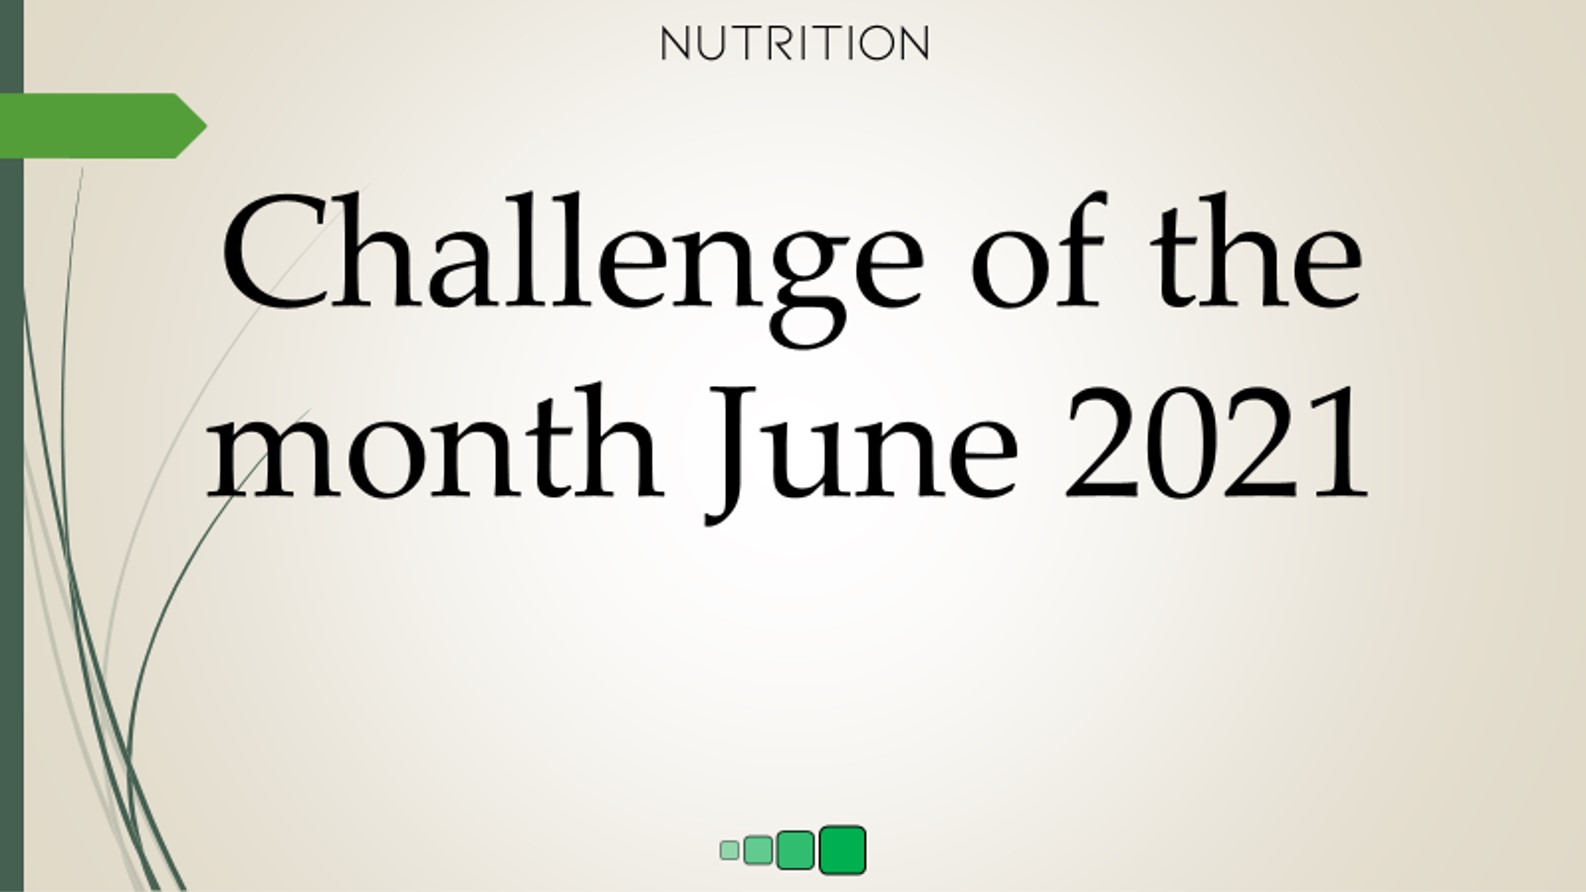 challenge of the month June 2021